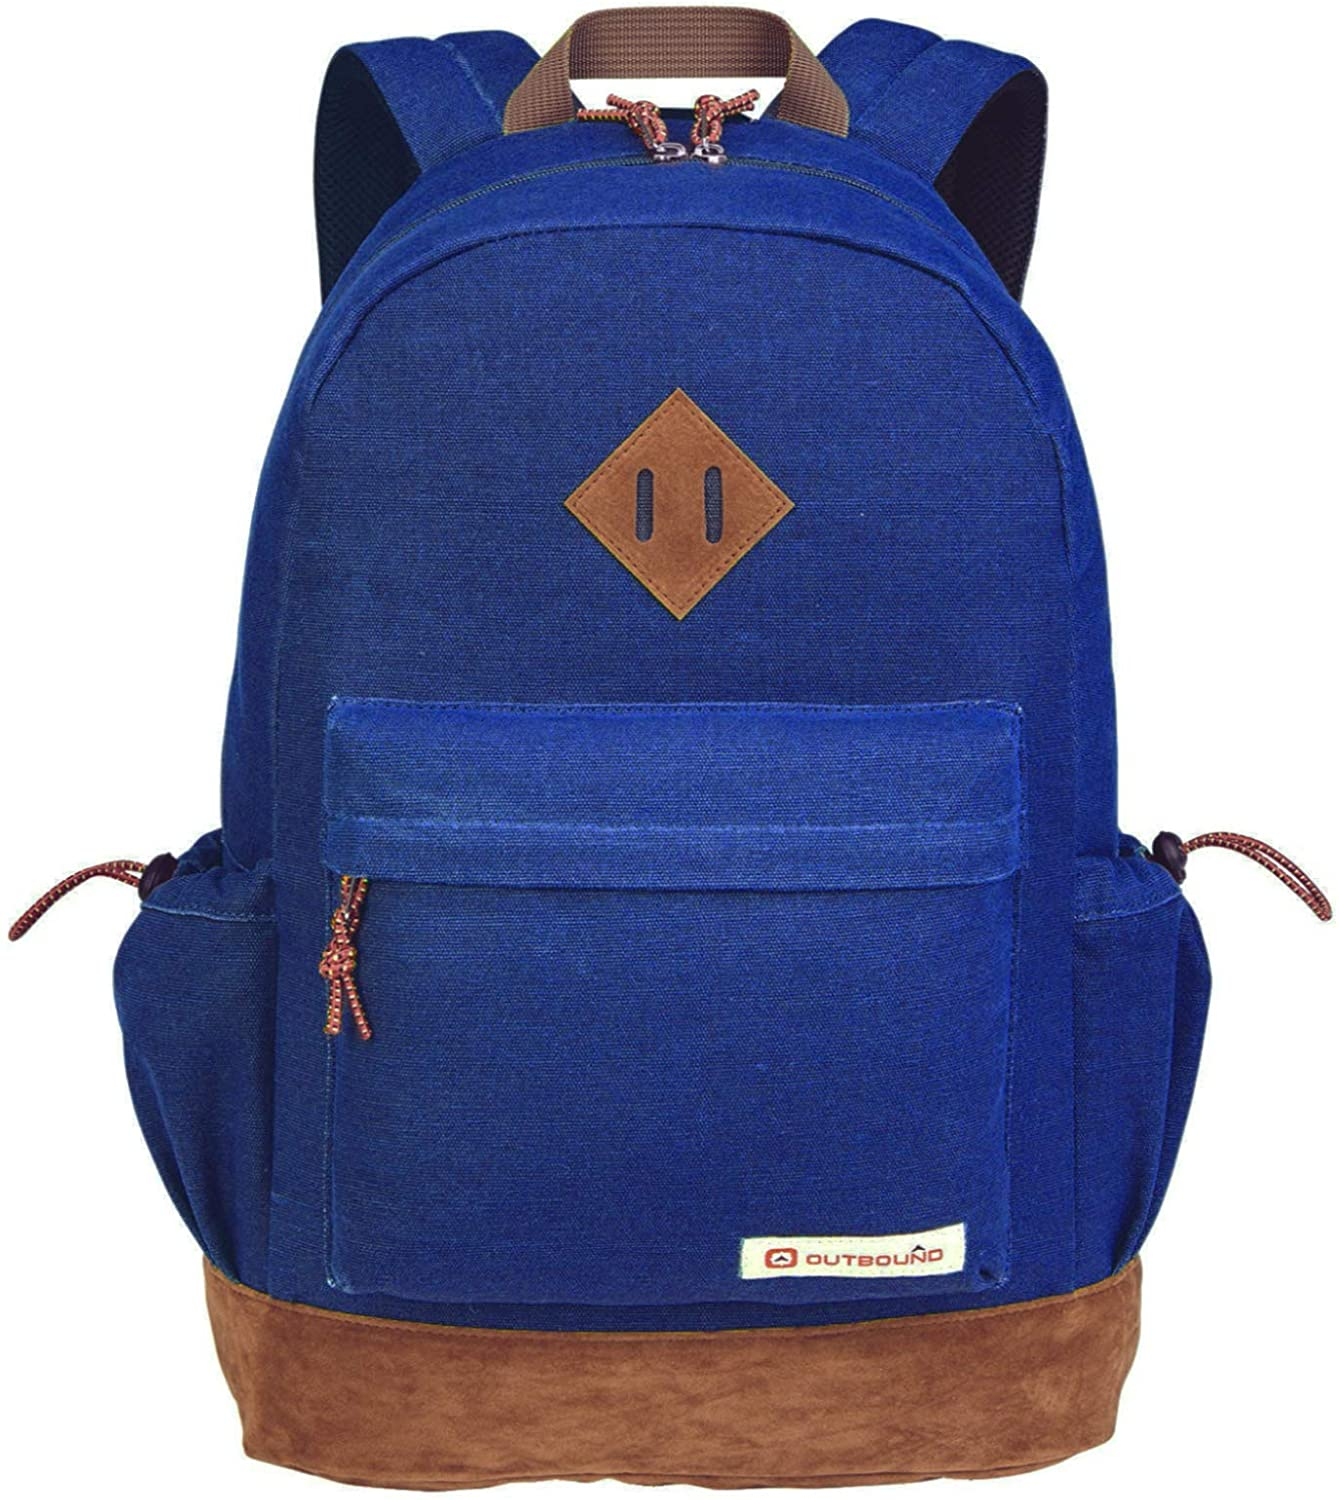 Outbound Canvas Backpack | School Backpack for Boys & Girls | 17.7 Inch